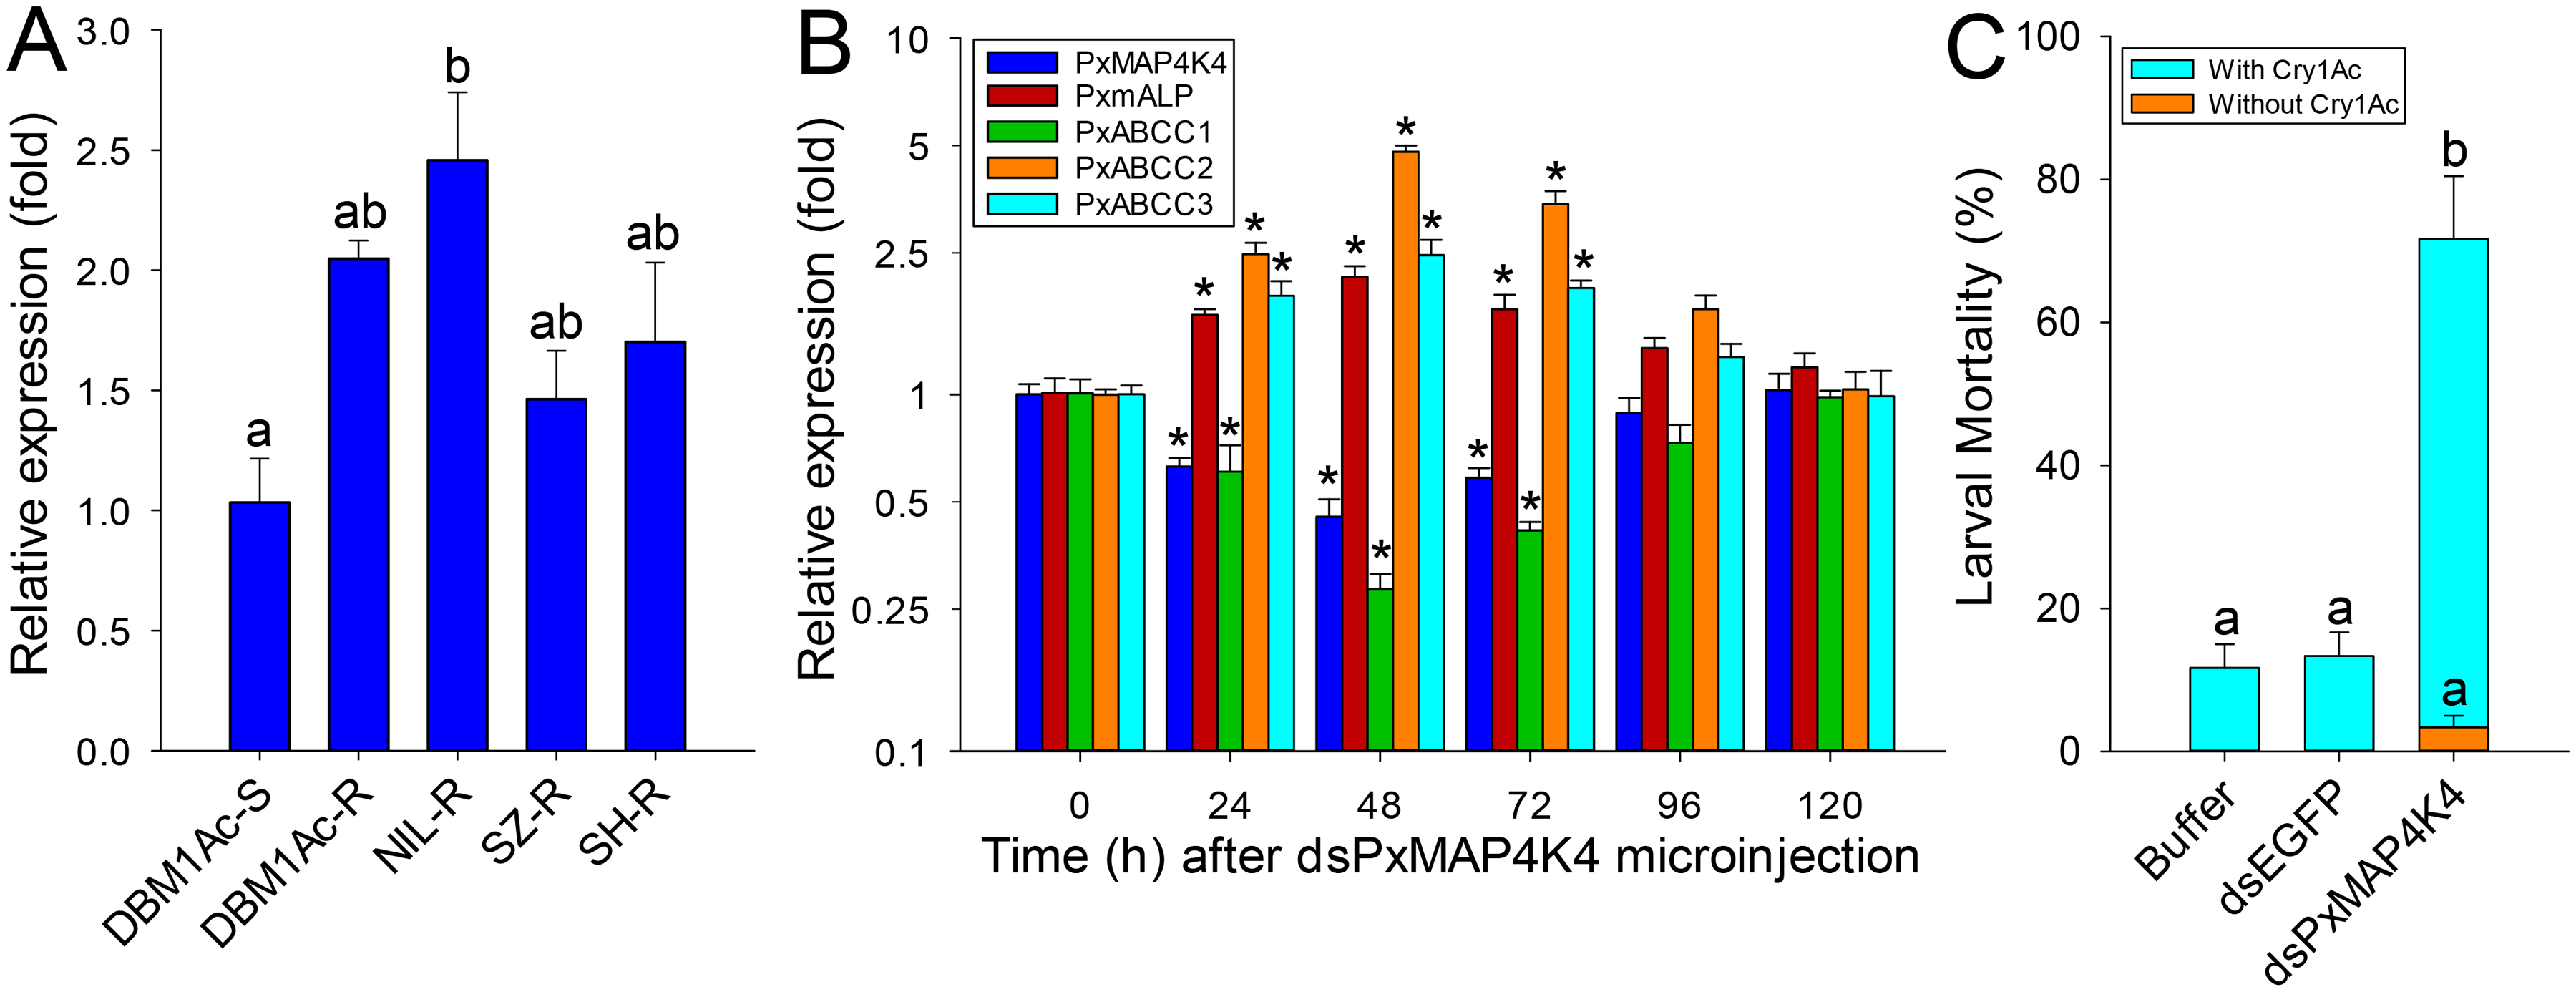 Detection of <i>PxMAP4K4</i> gene expression and effect of its silencing on expression of <i>PxmALP</i> and PxABCC genes and susceptibility to Cry1Ac.